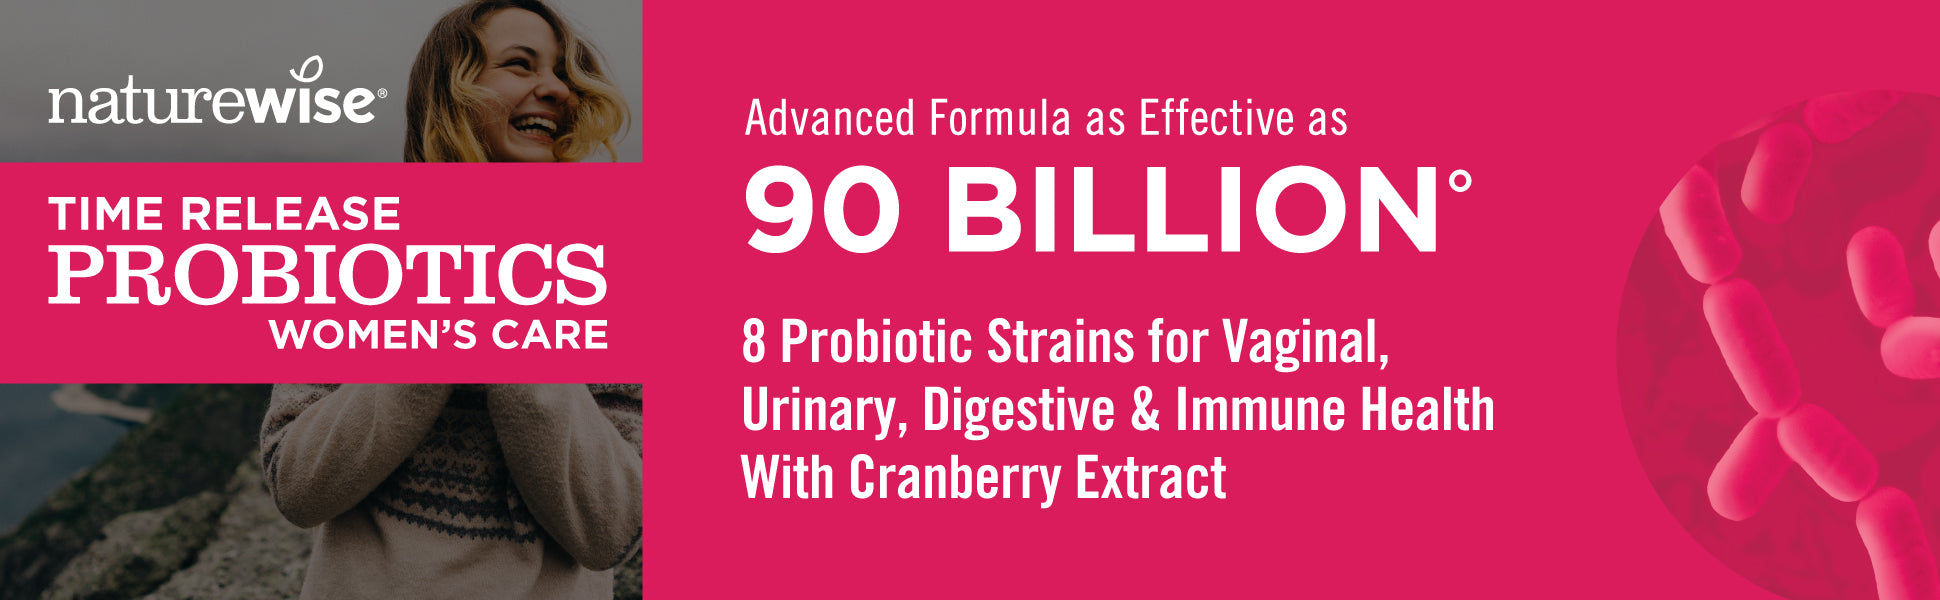 Advanced Formula as Effective as 90 Billion